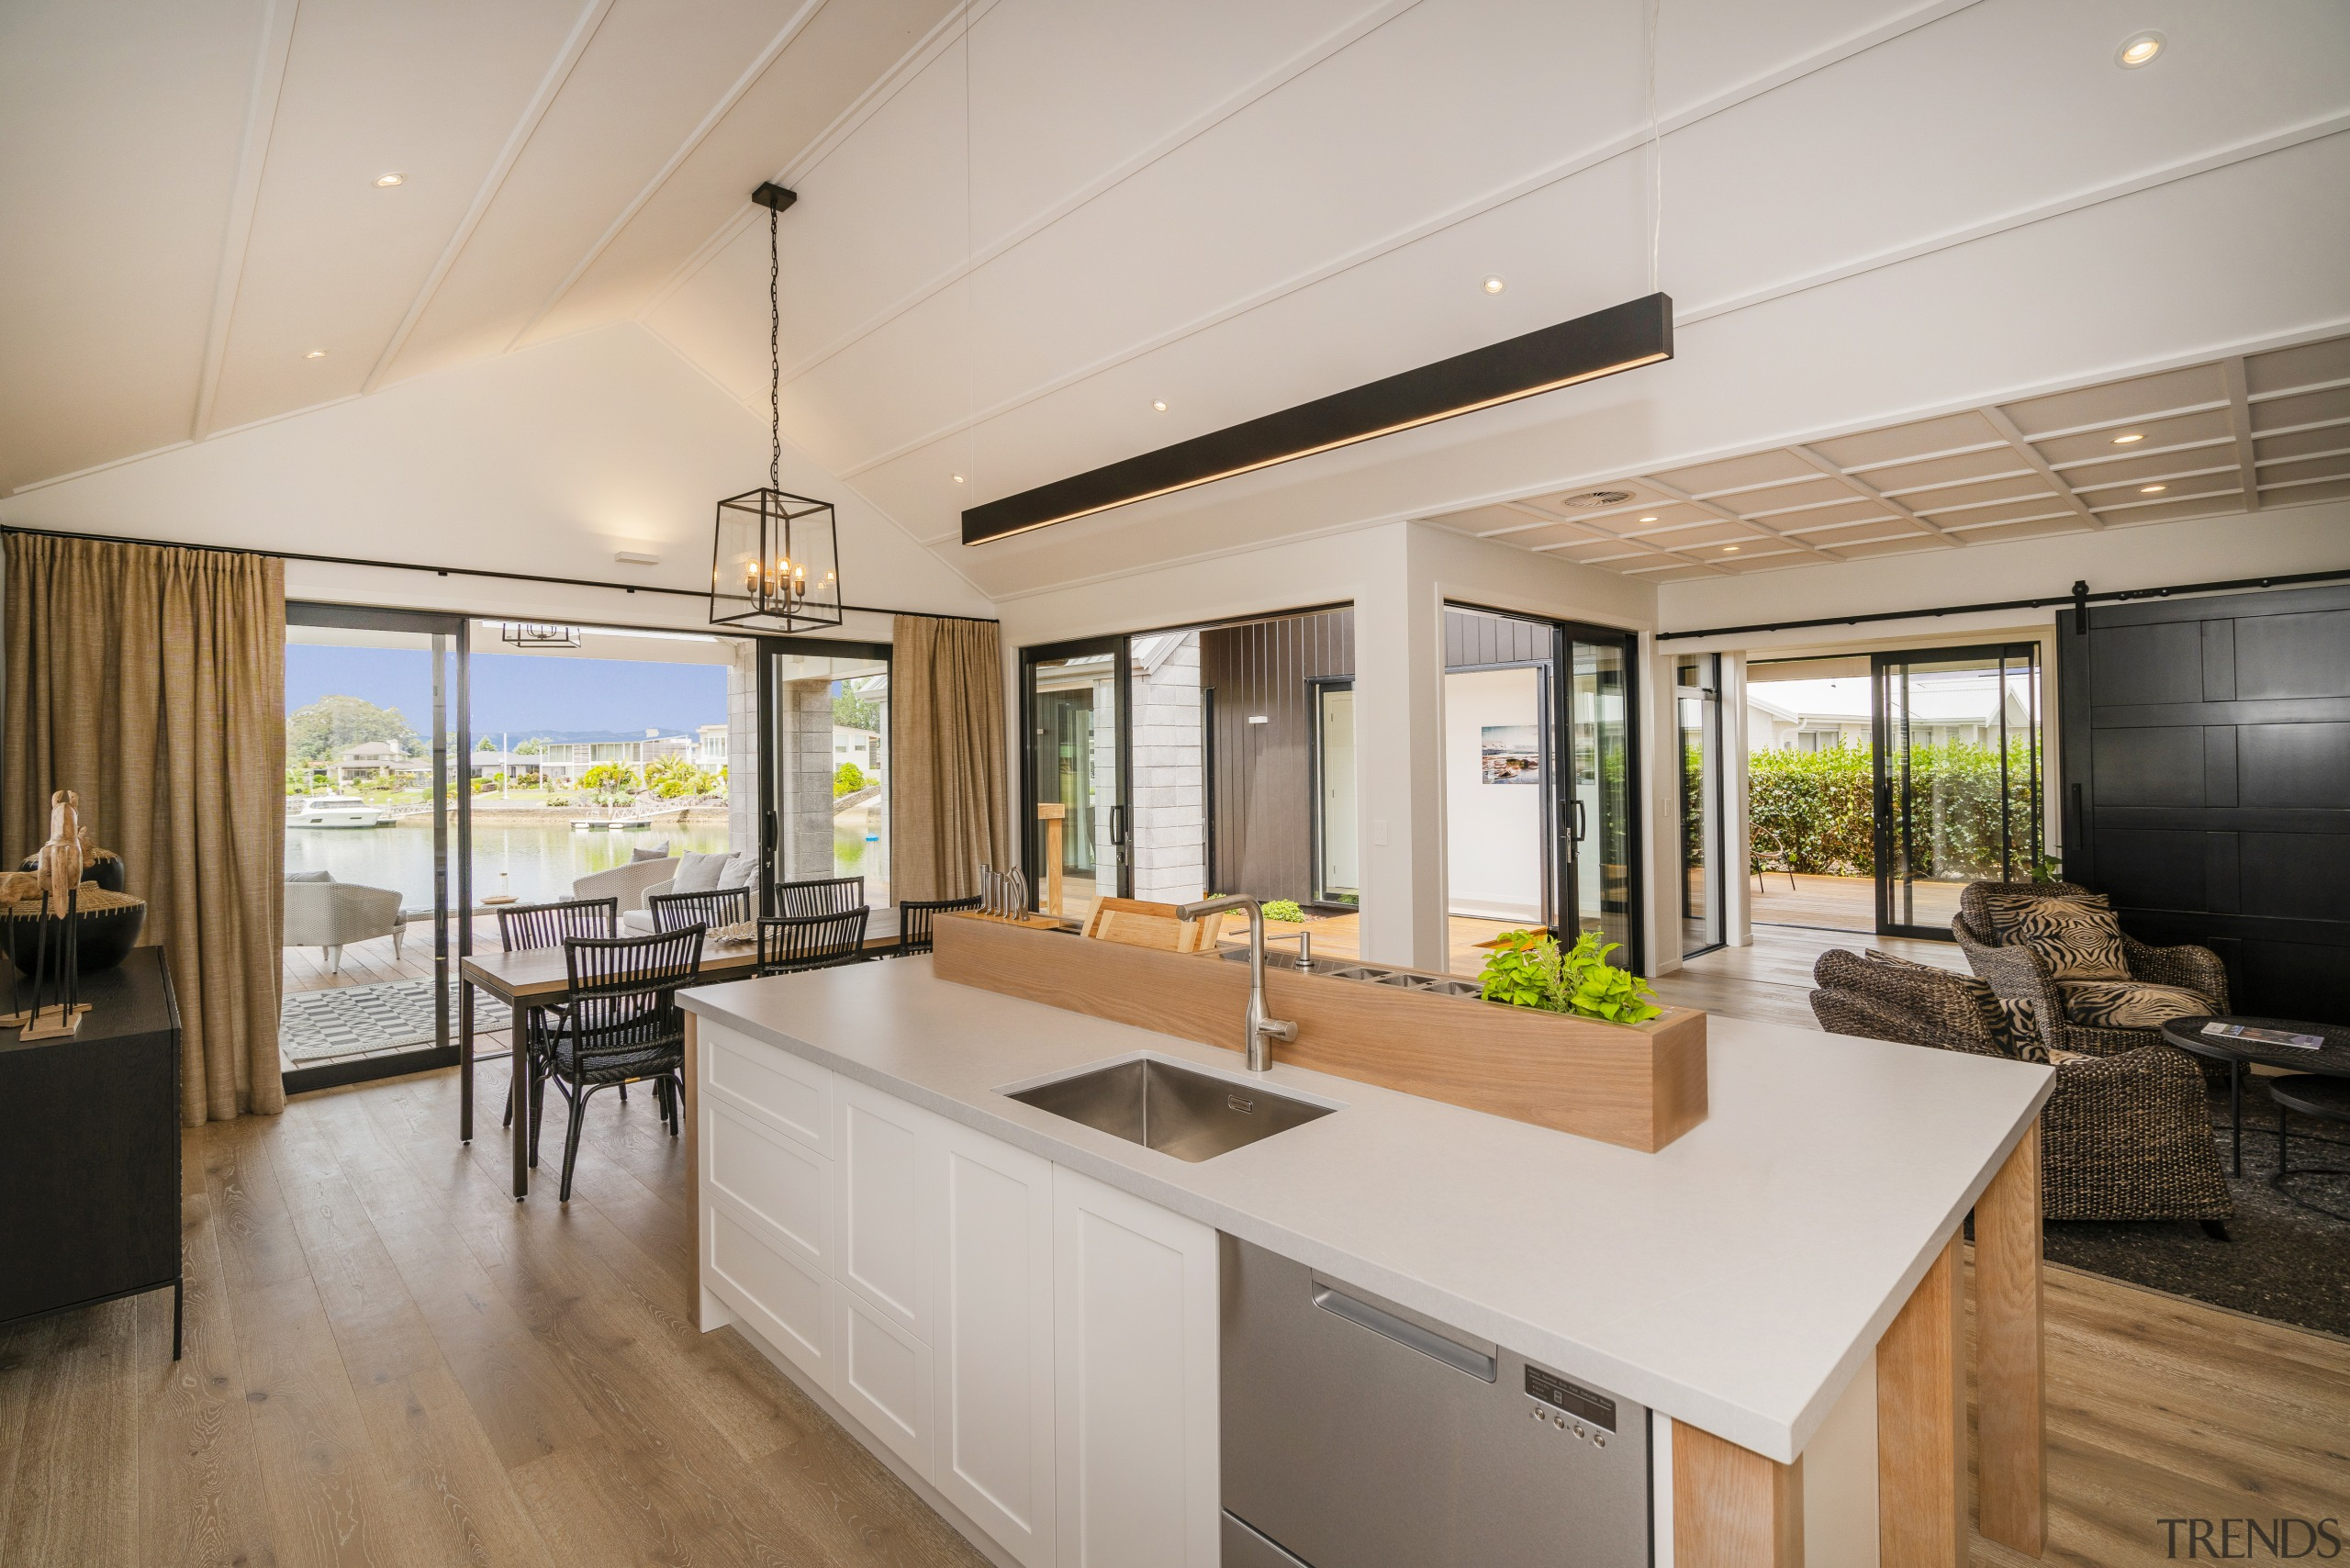 Open sesame. Covered pavilions straight ahead and to countertop, house, interior design, kitchen, Landmark Homes,  Showhome, Coromandel, timber flooring